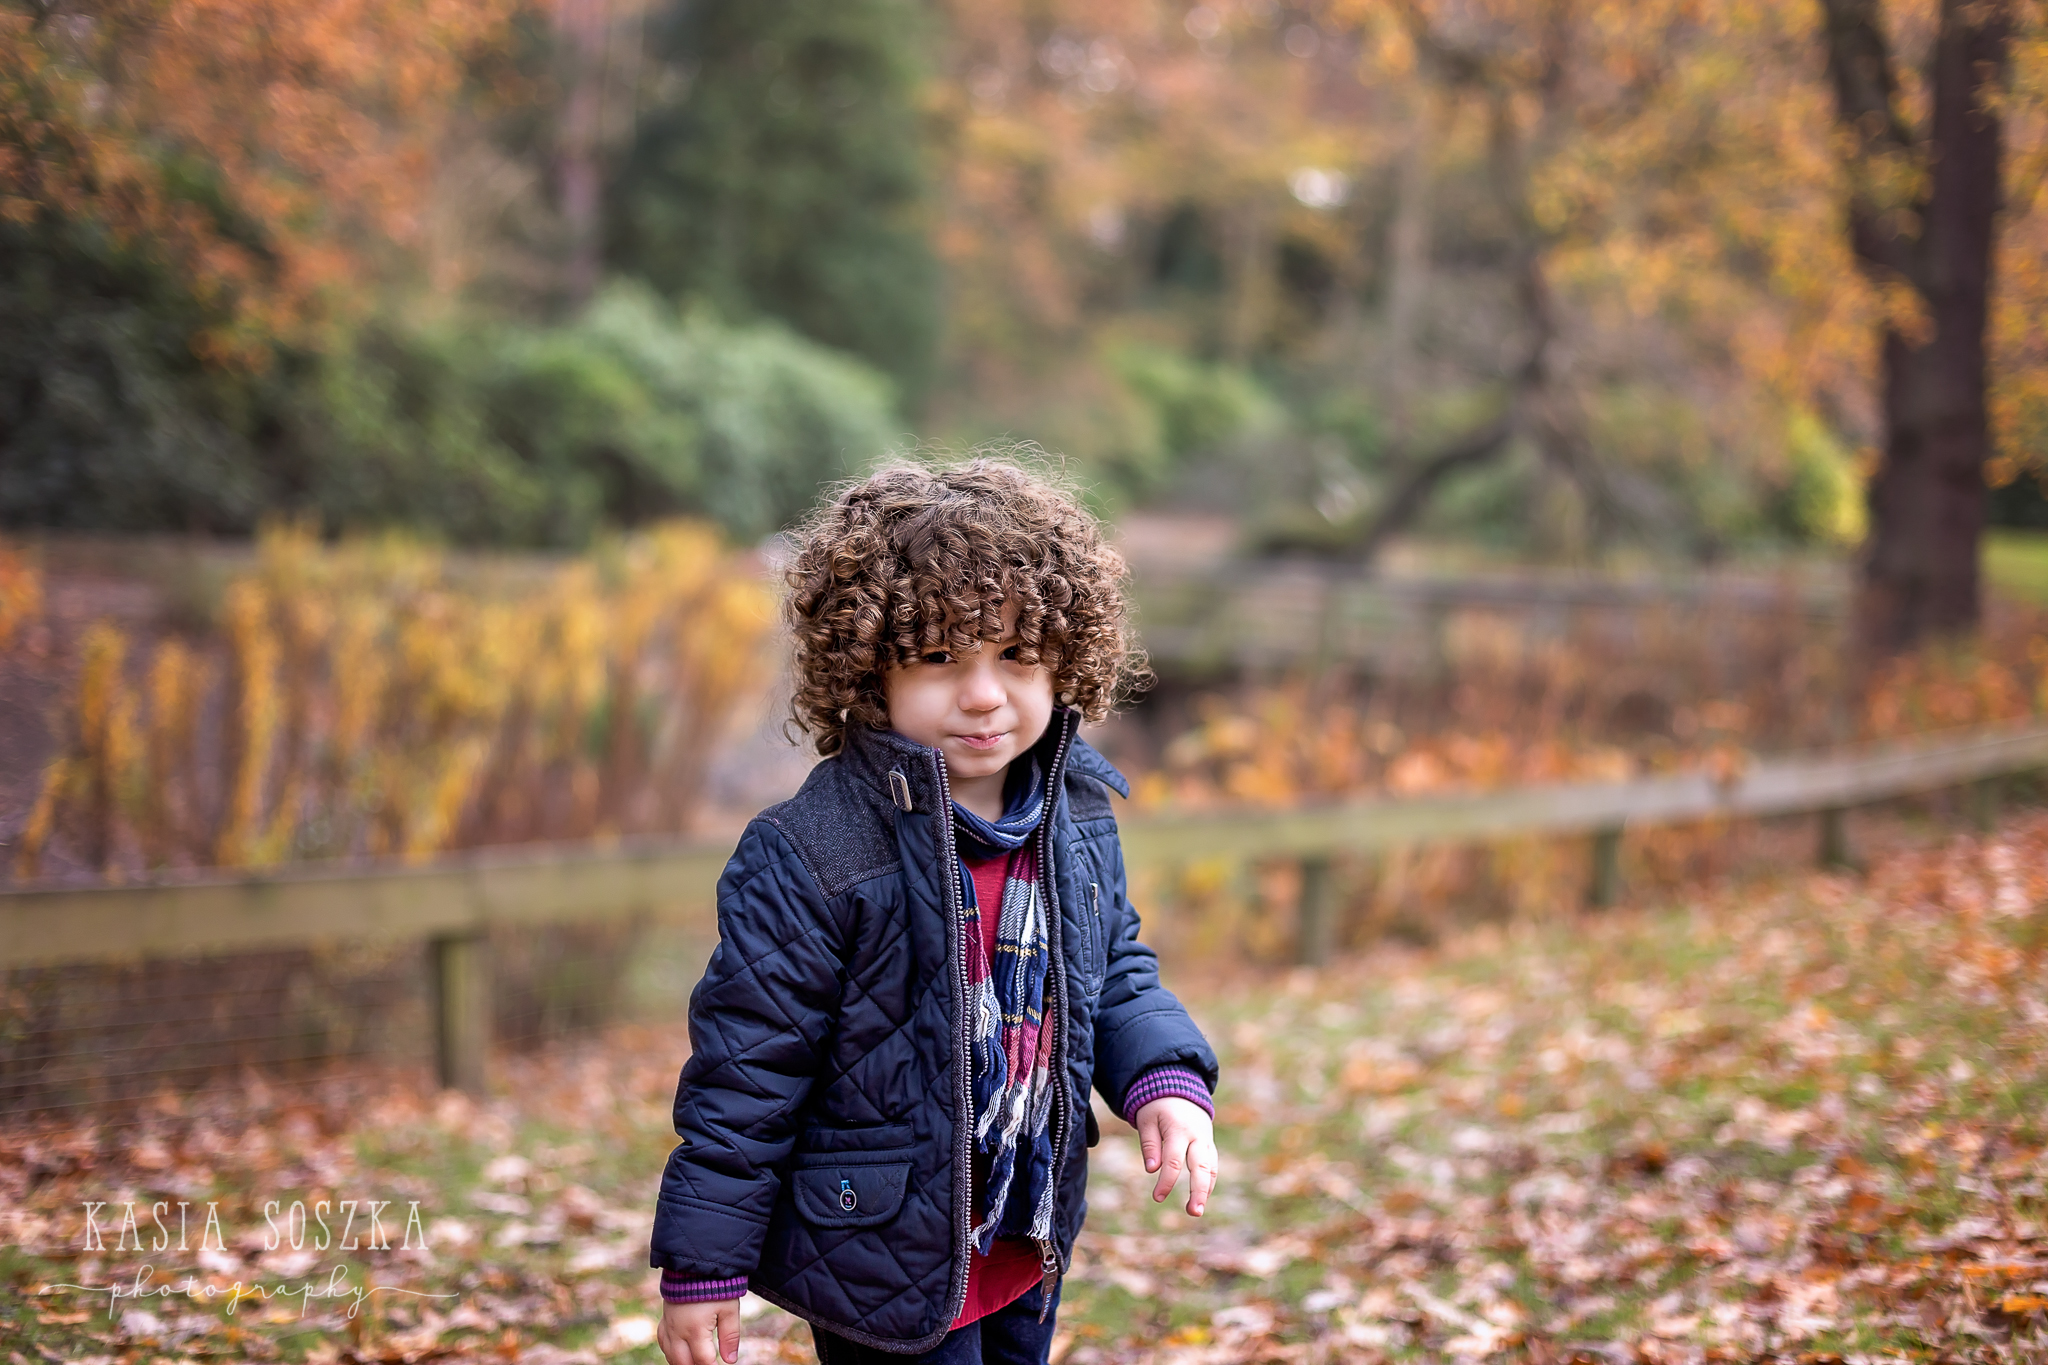 Leeds child photographer: cute little boy with thick dark curly hair walking through a park covered in Autumn leaves.